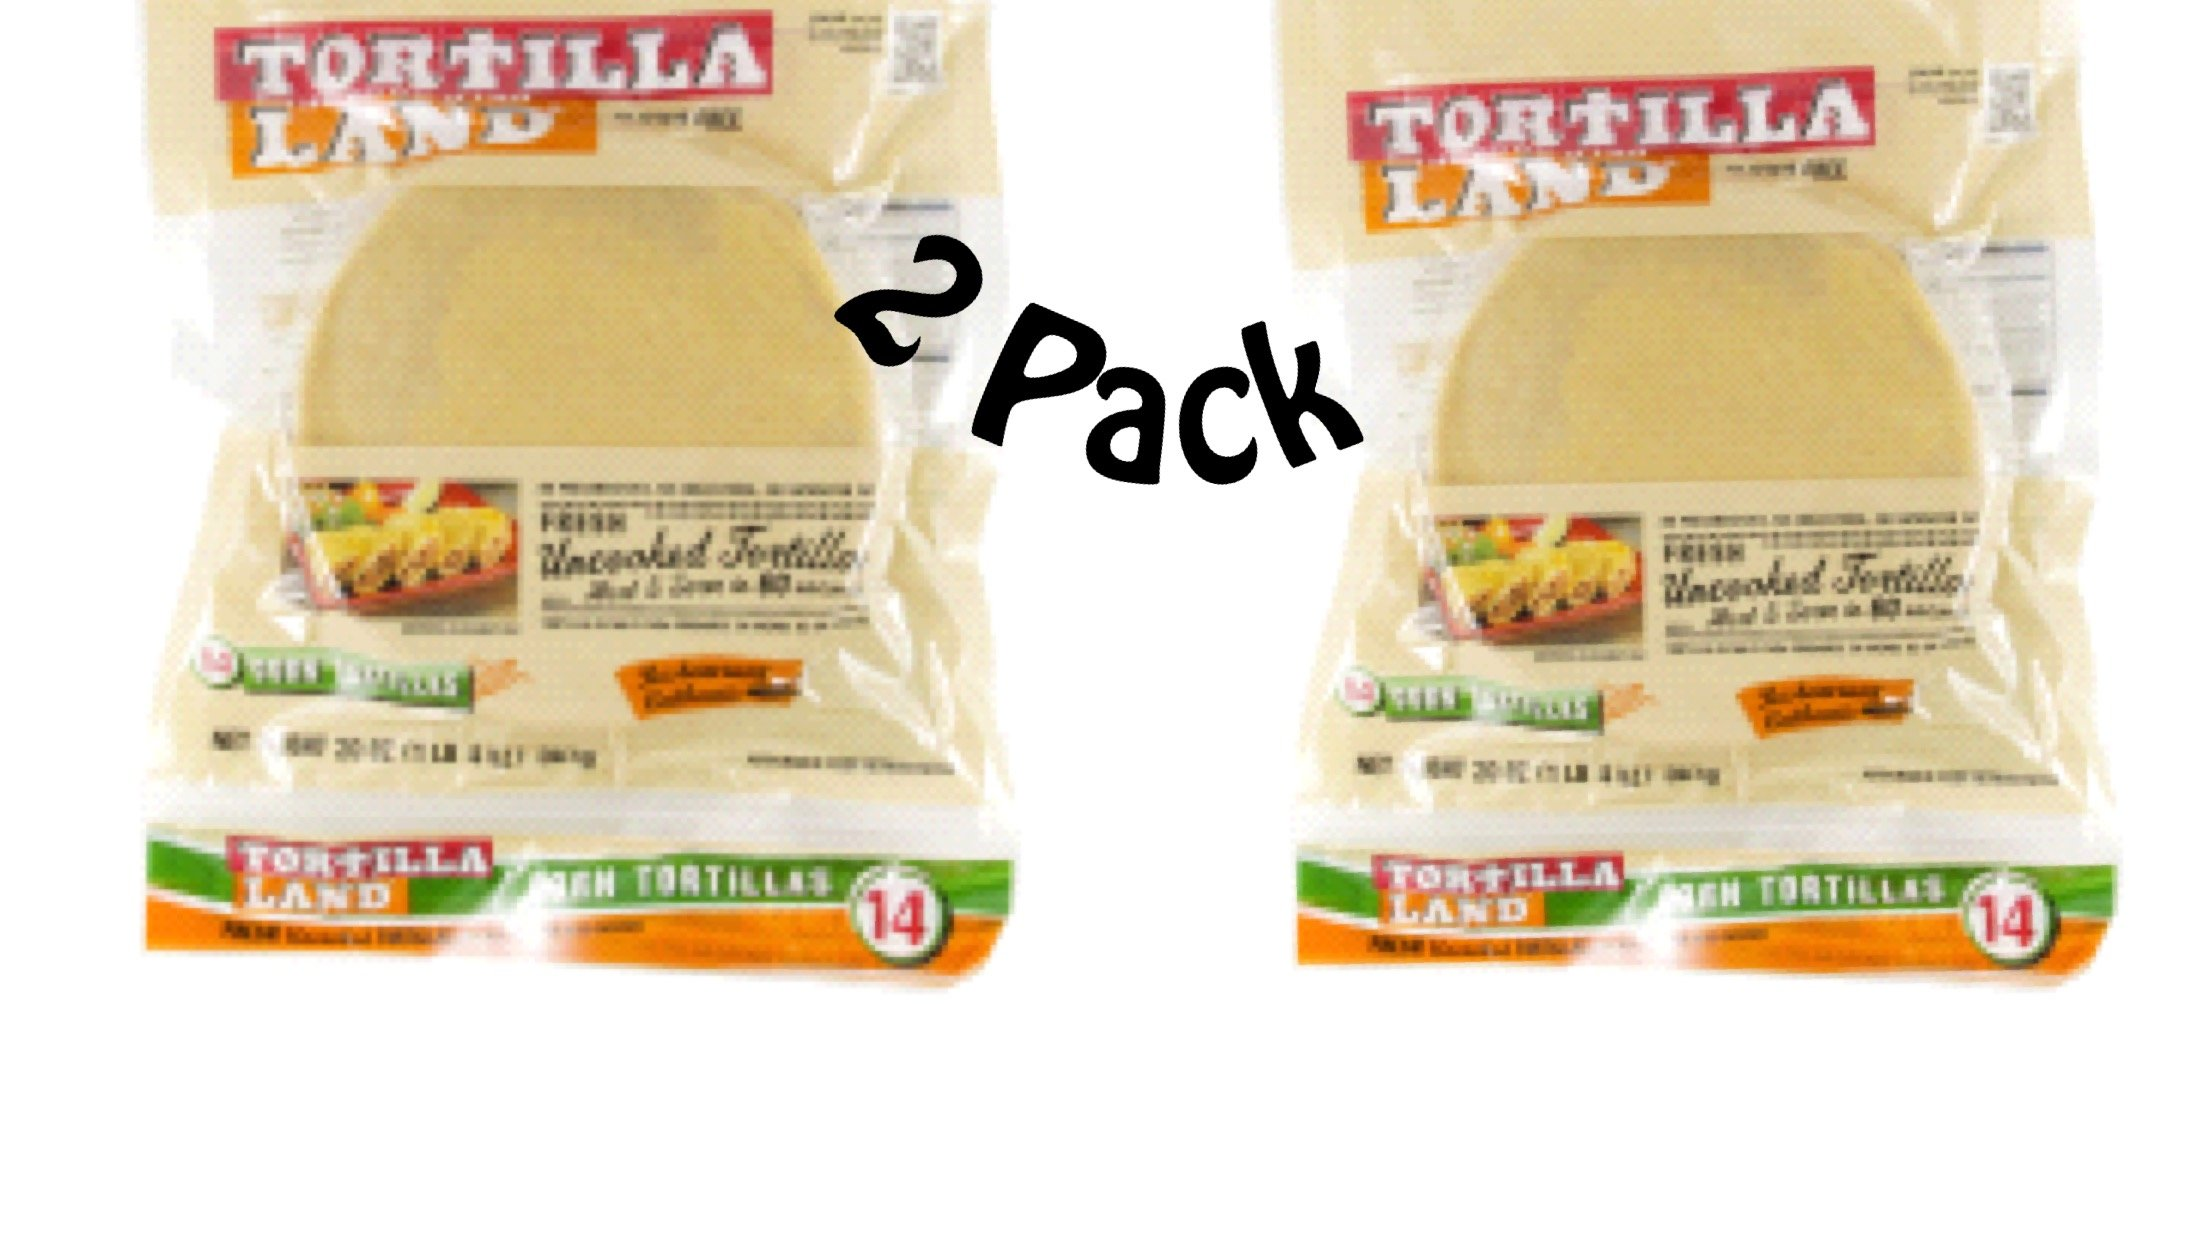 Uncooked Corn Tortillas All Natural Ingredients Pack of 2 Multi-pack! Gluten Free